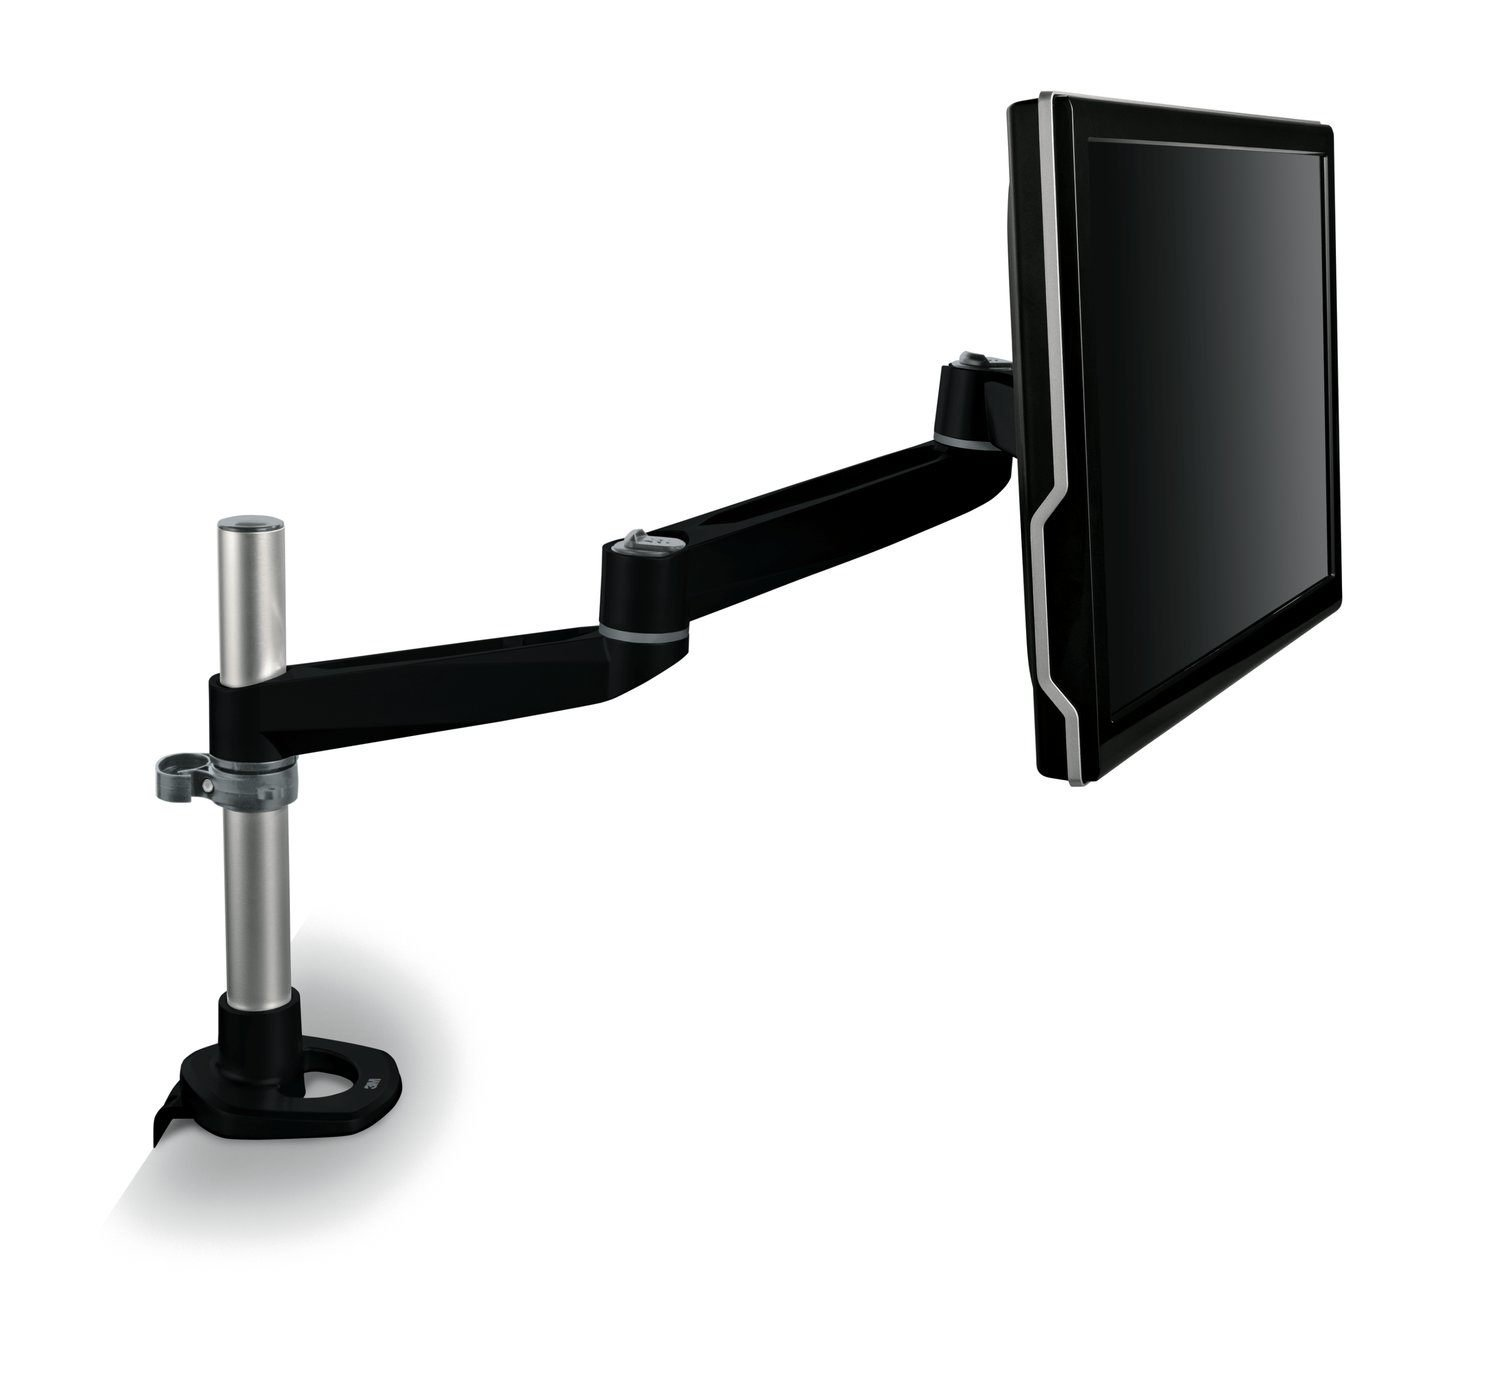 3M Ergonomic Adjustable Dual-Swivel Monitor Arm, (MA140MB) 3m - Supplies Monitor Accessories